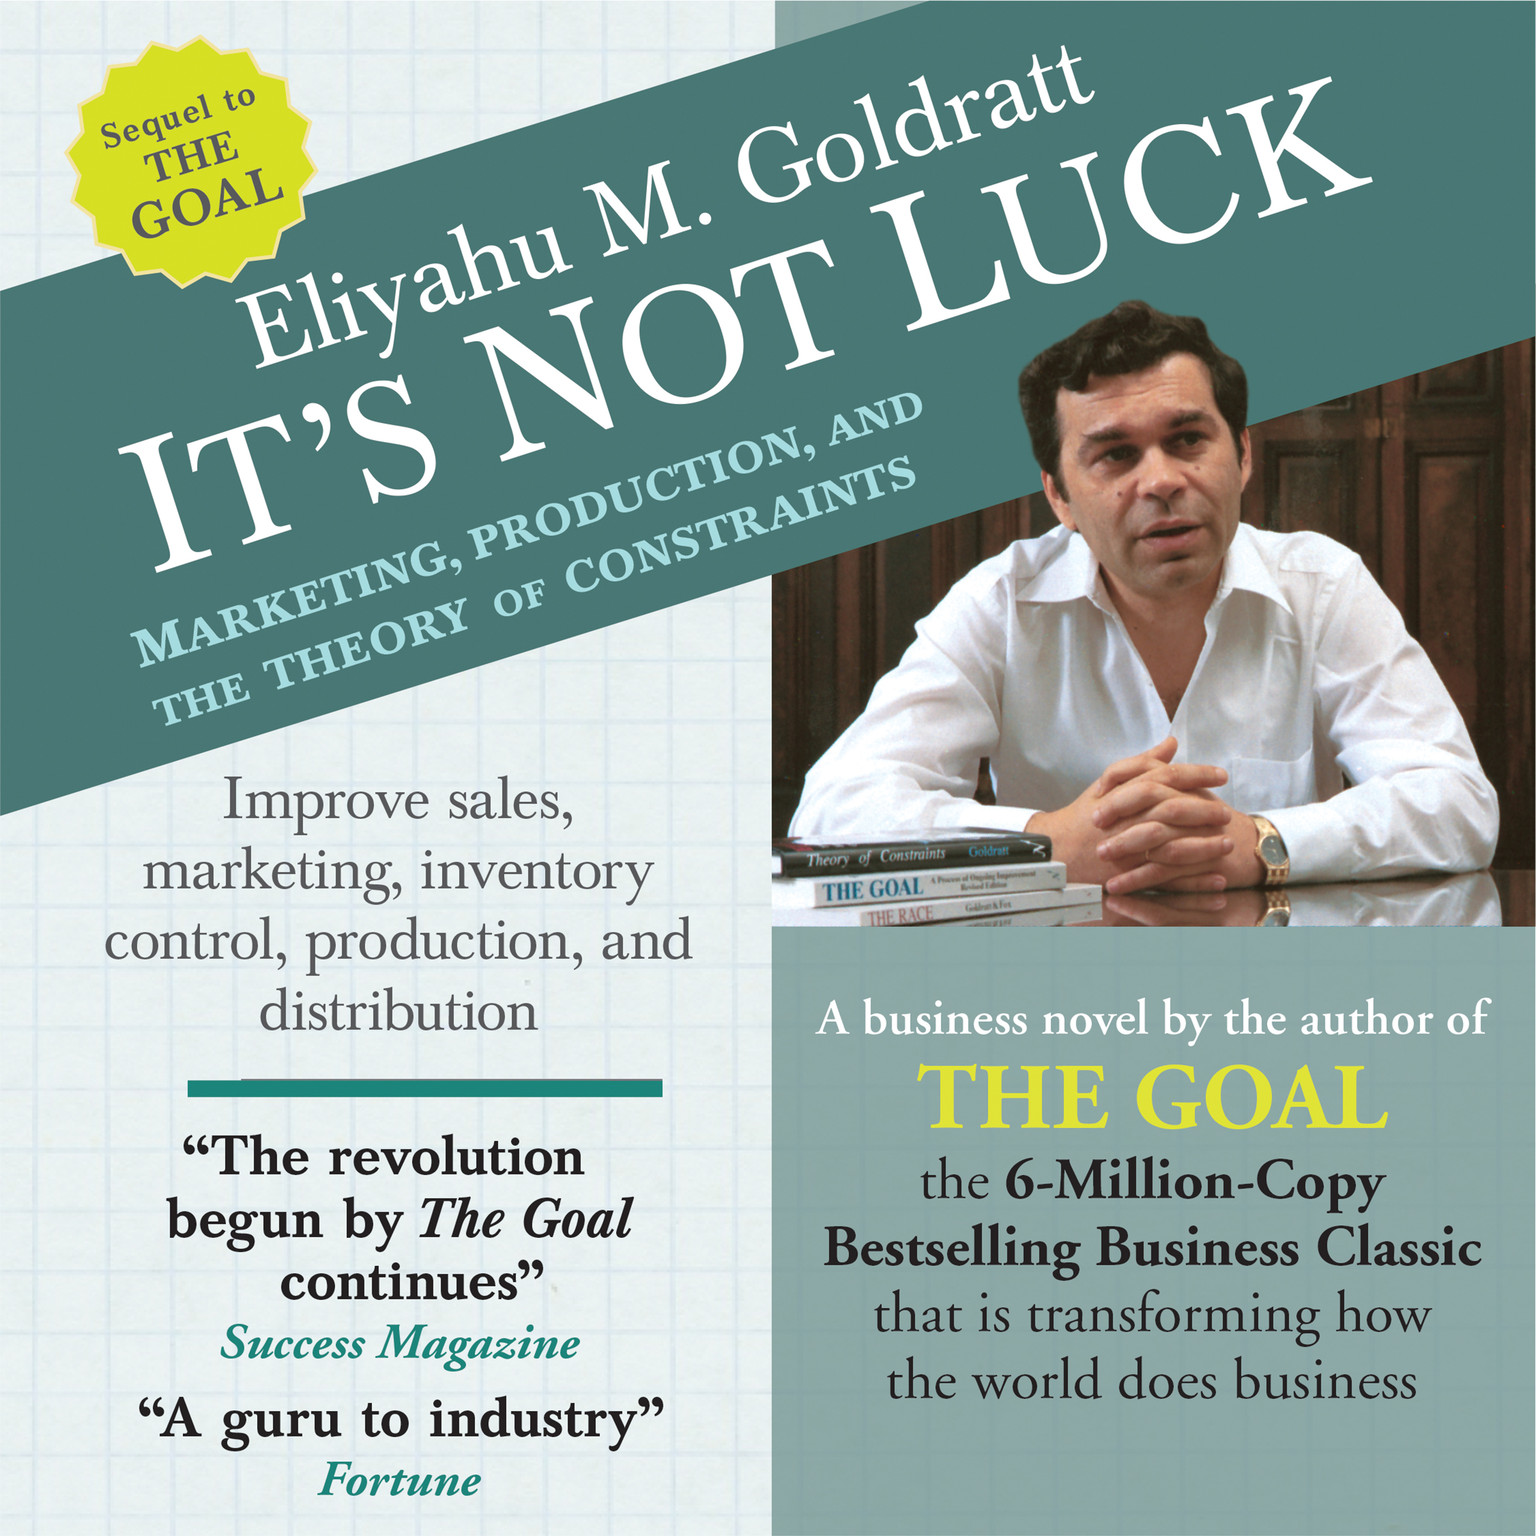 hear the goal audiobook by eliyahu m goldratt for just 5 95 its not luck marketing production and the theory of constraints audiobook